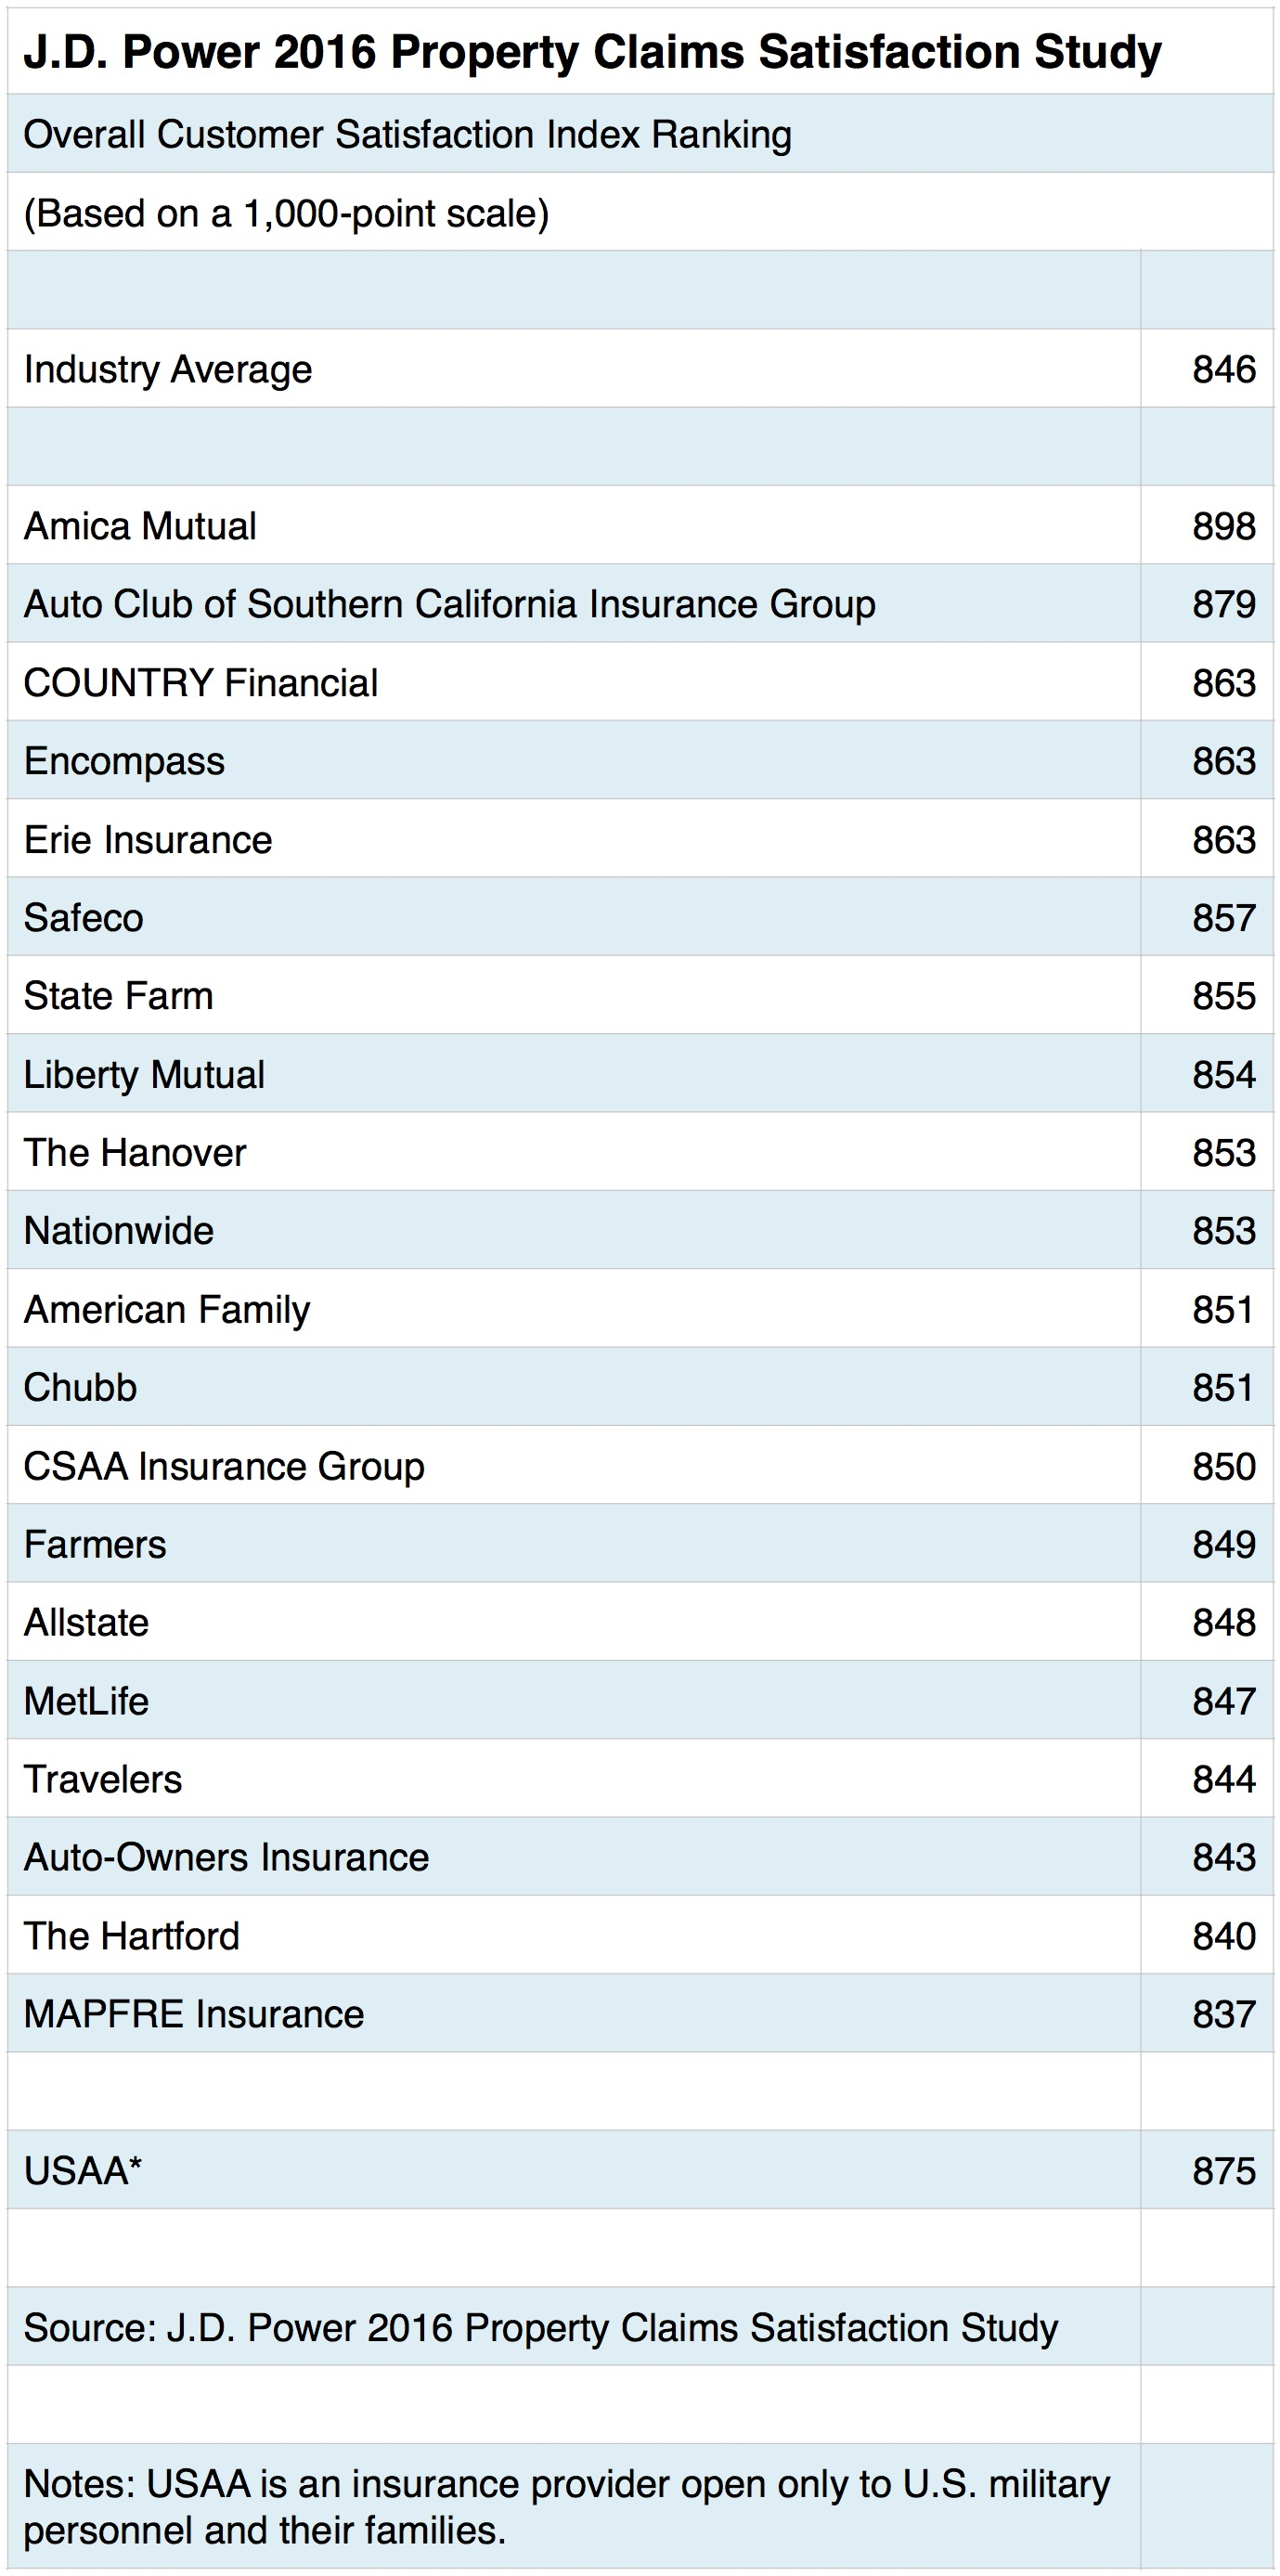 Amica Homeowners Insurance top 20 claims satisfaction ranking: amica reigns as industry